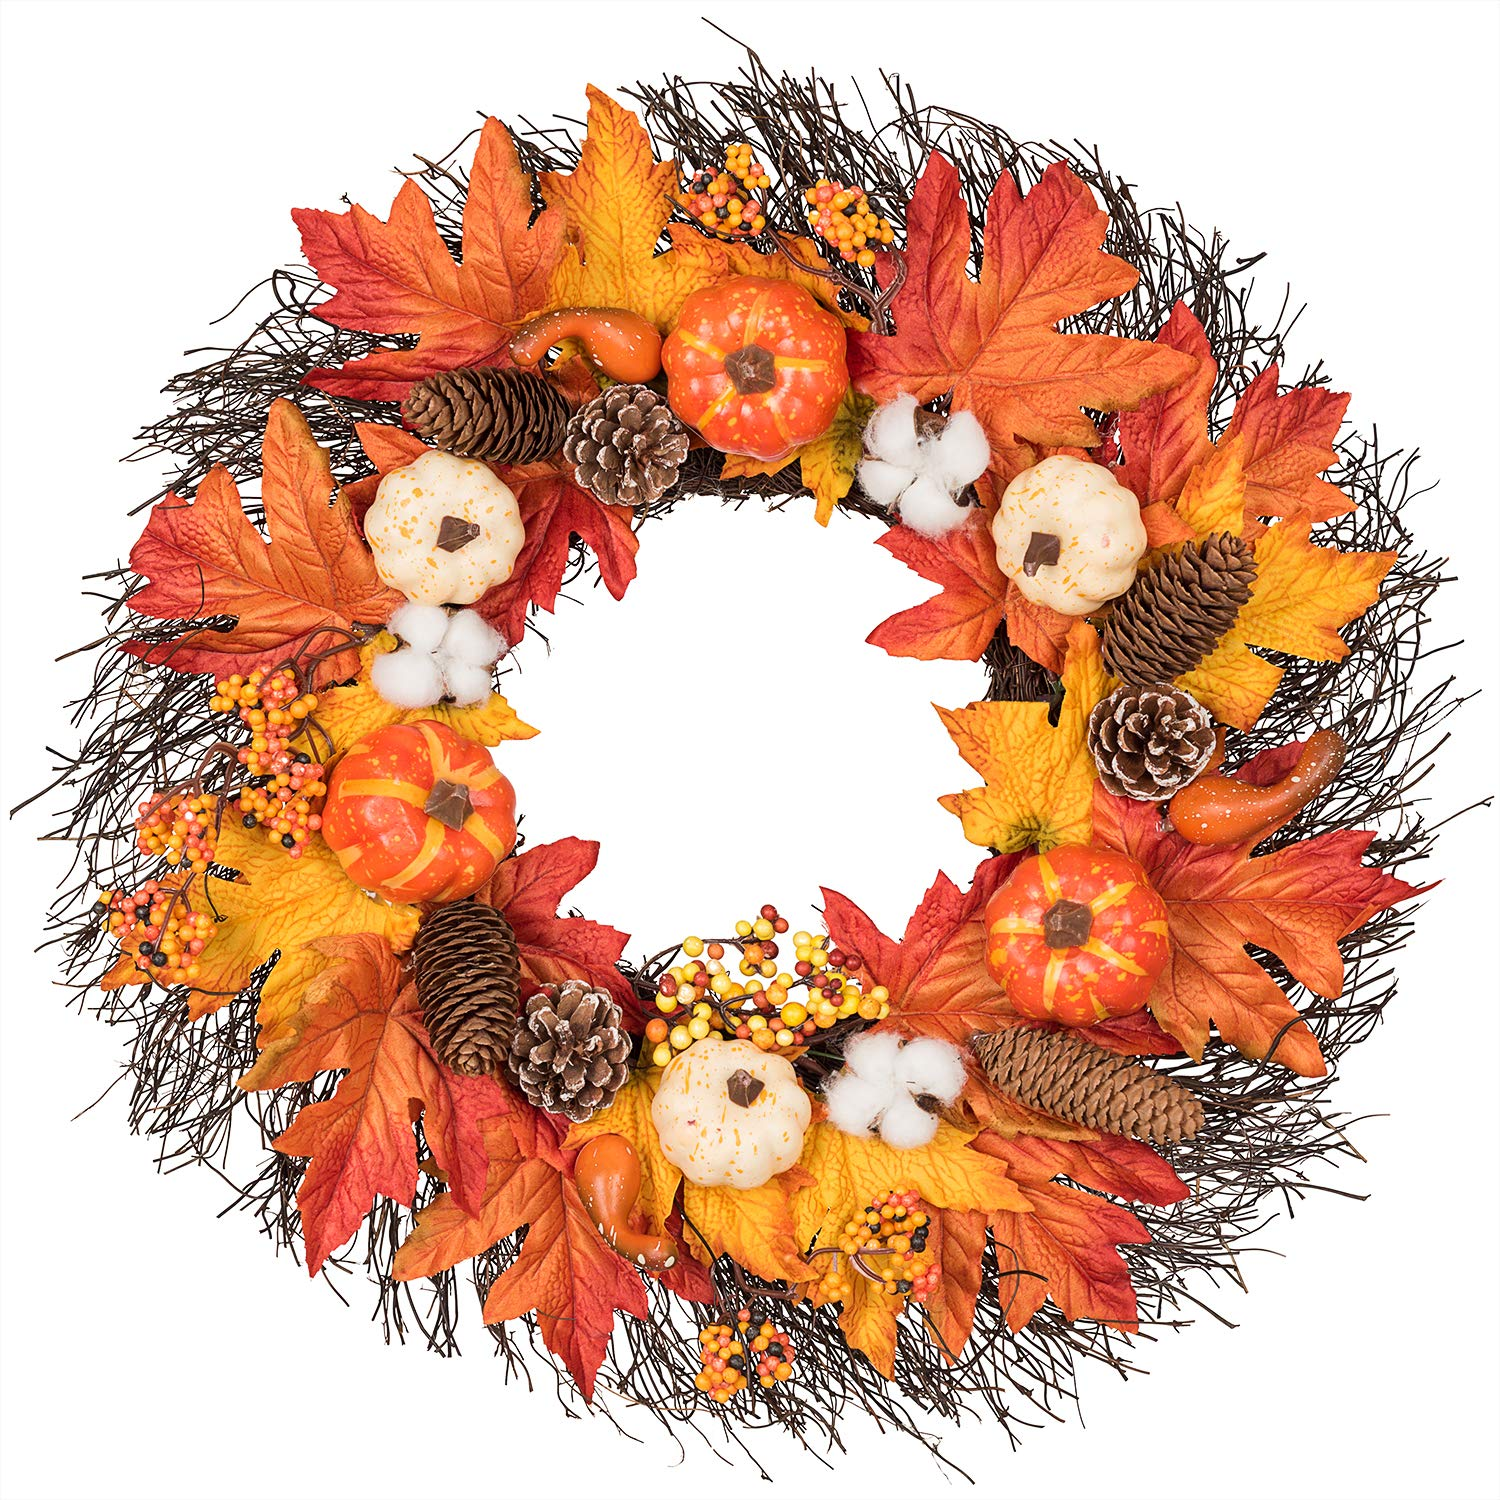 Lvydec Maple Leaves Fall Wreath - 20'' Autumn Door Wreath with Pumpkin, Pinecone, Cotton Boll, Berries, Harvest Wreath for Fall and Thanksgiving Decoration by Lvydec